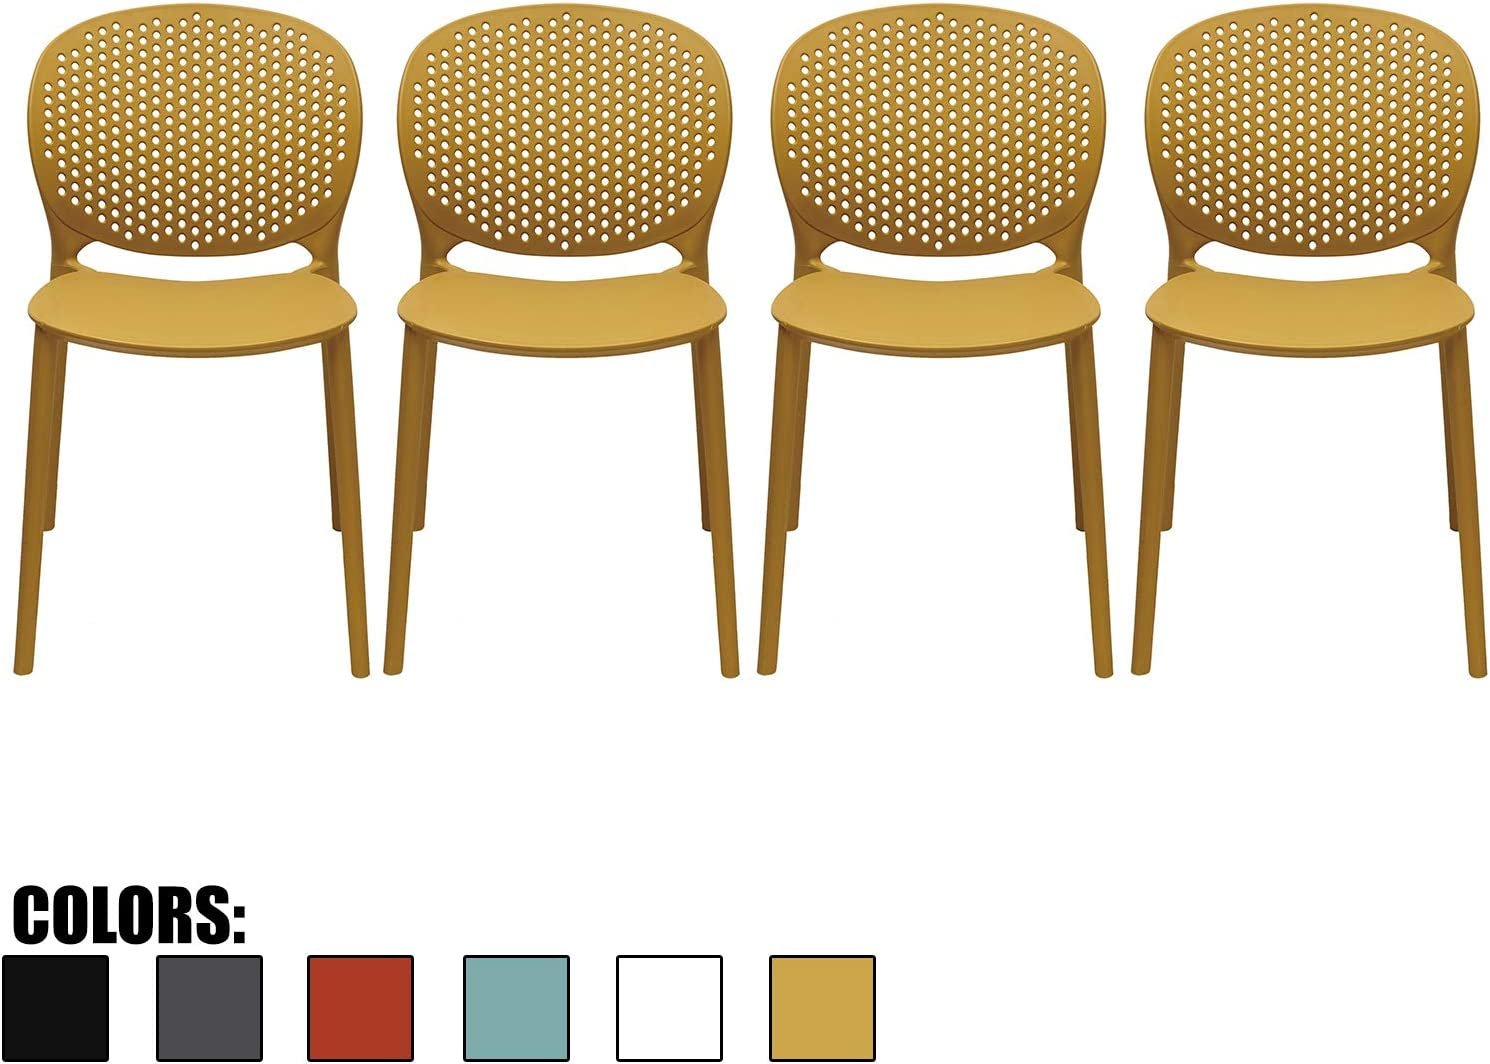 7xhome Set of 7 - Dining Room Chairs - Plastic Chair with Backs Designer  Chair Modern Chair Indoor Outdoor Light Weight Armless Chair - Matte Finish